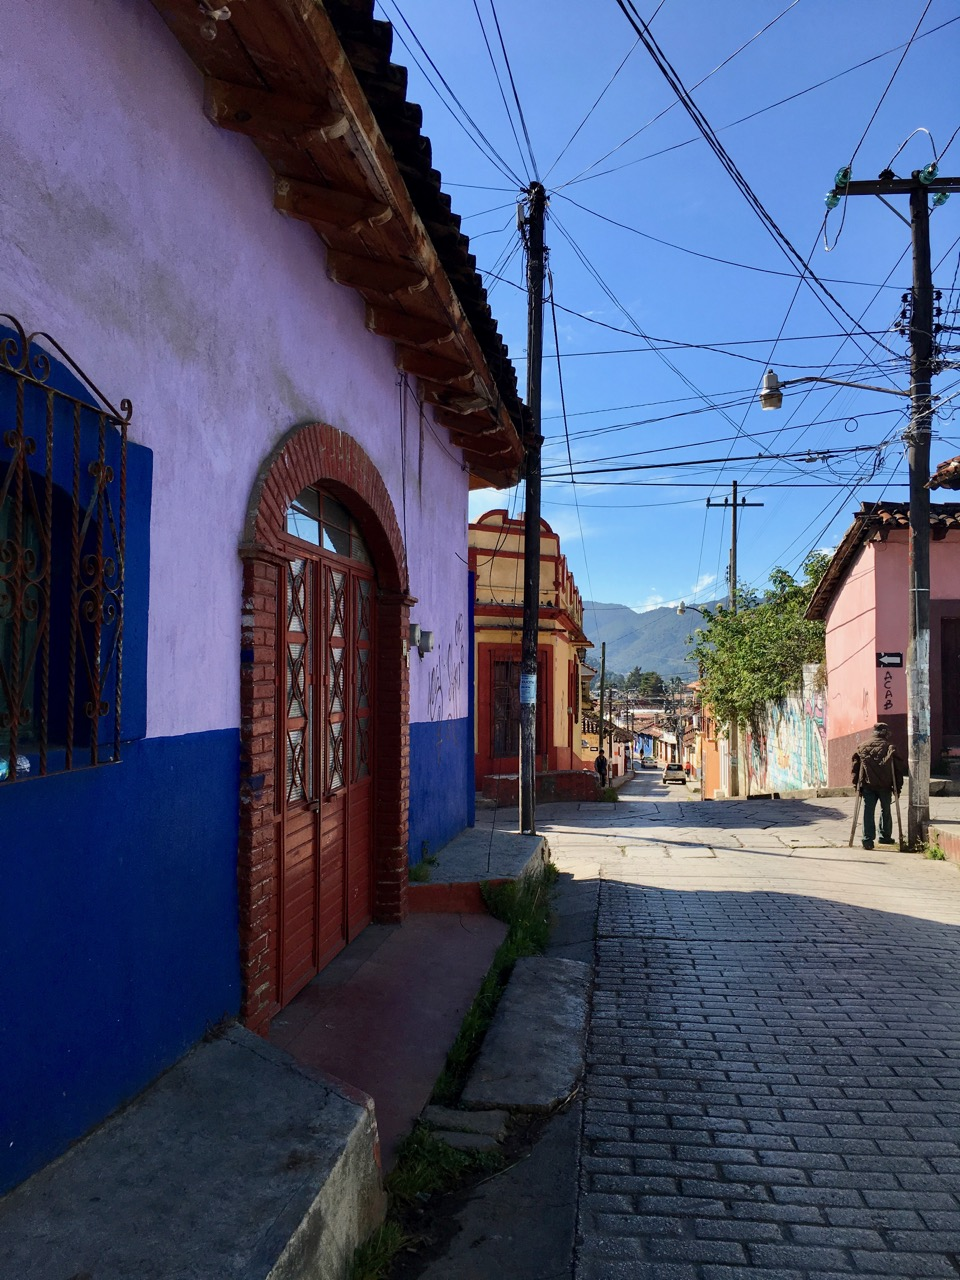 San Cristobal, Mexico